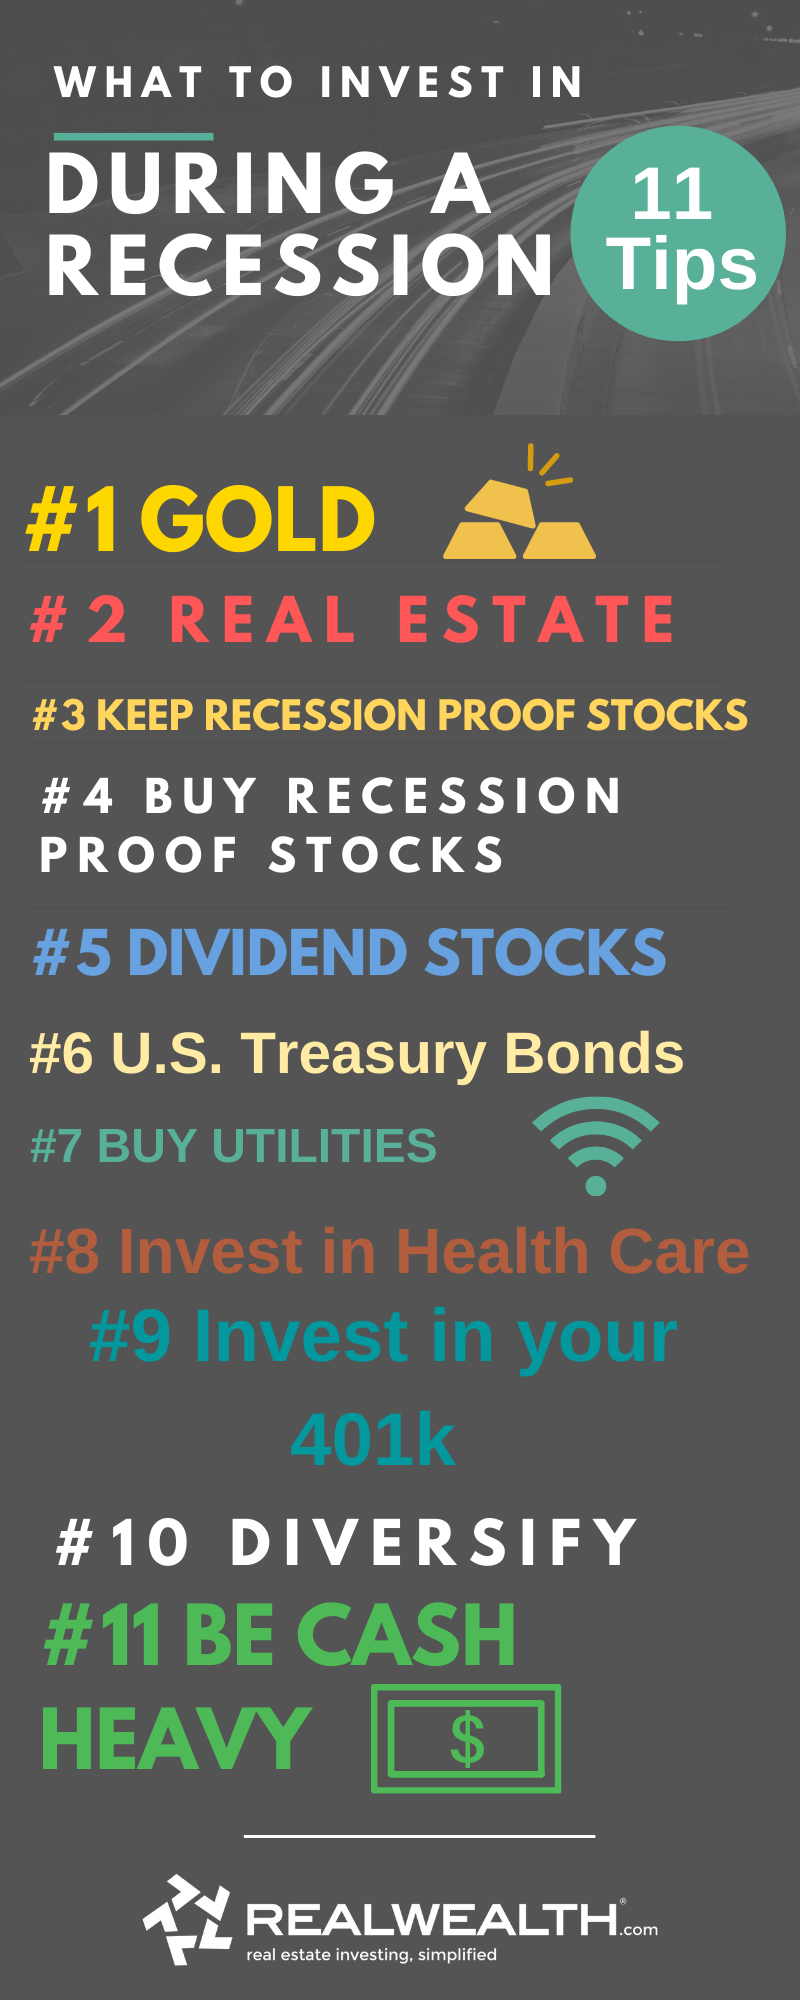 Pin on Real Estate Investor Tips